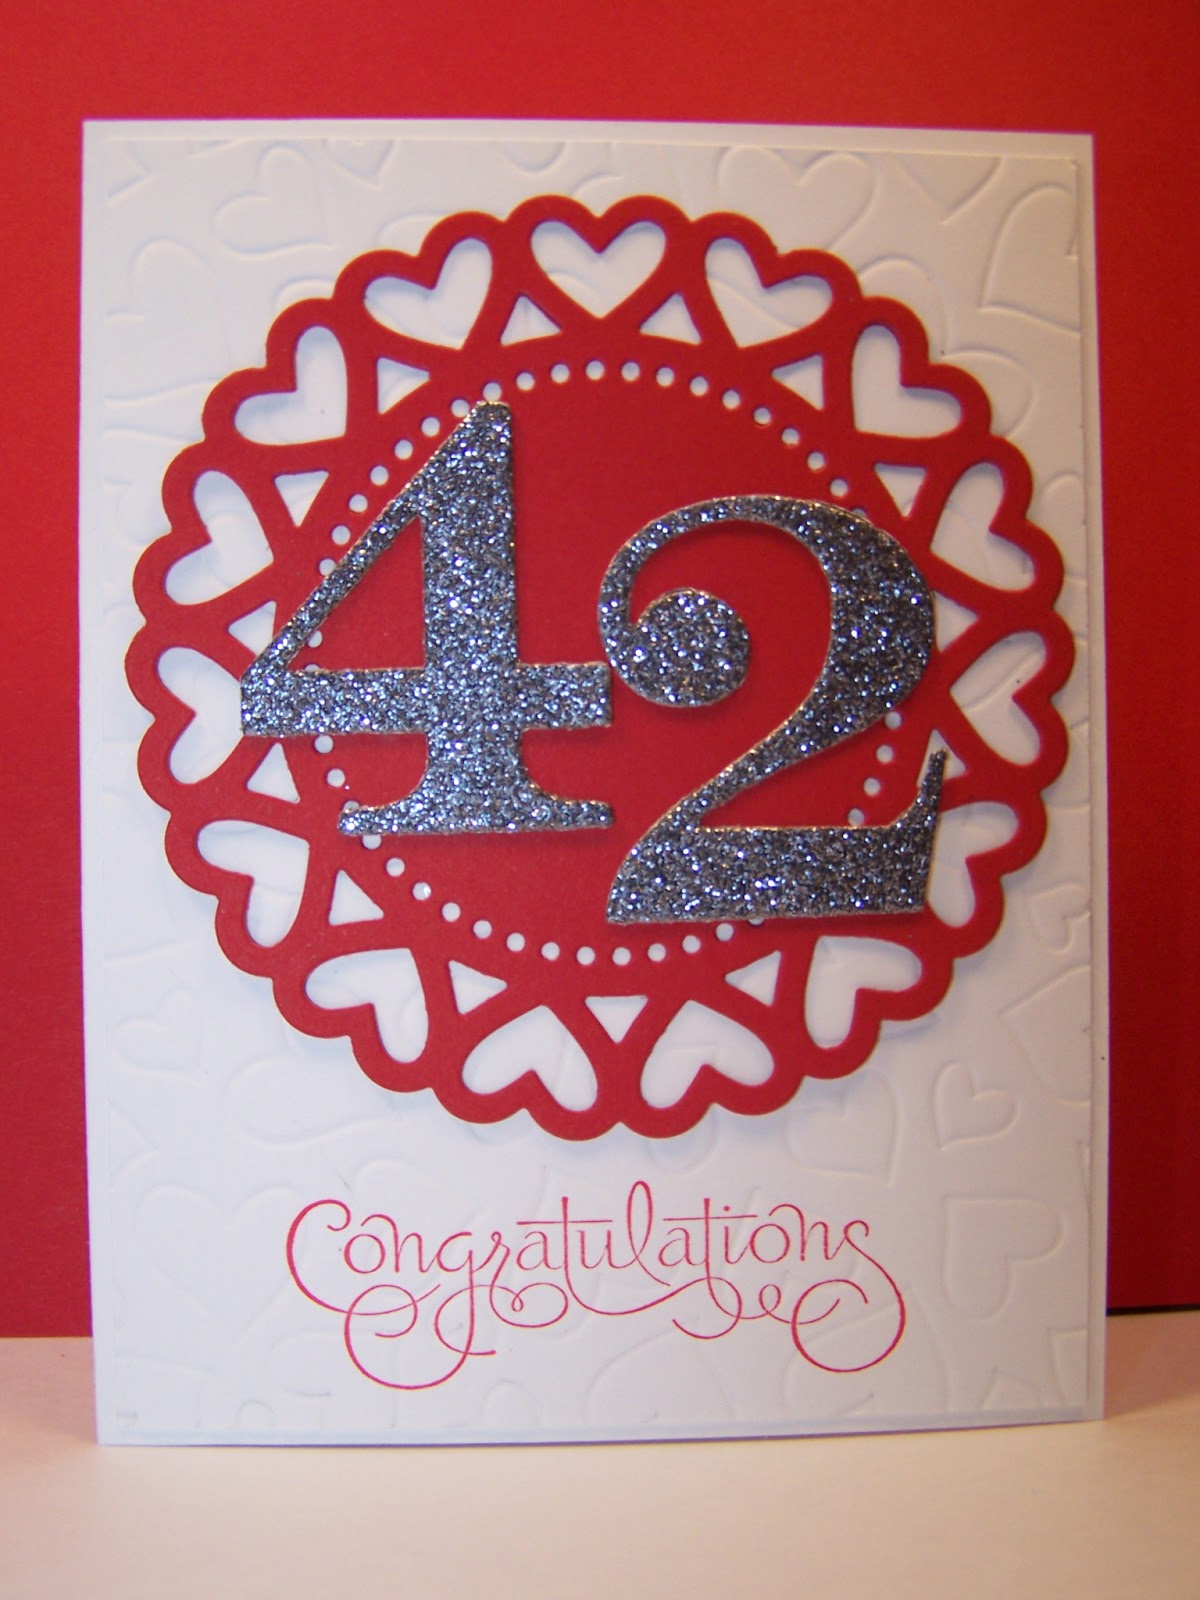 My stamping and beading therapy belated anniversary wishes darnell belated anniversary wishes darnell mister m4hsunfo